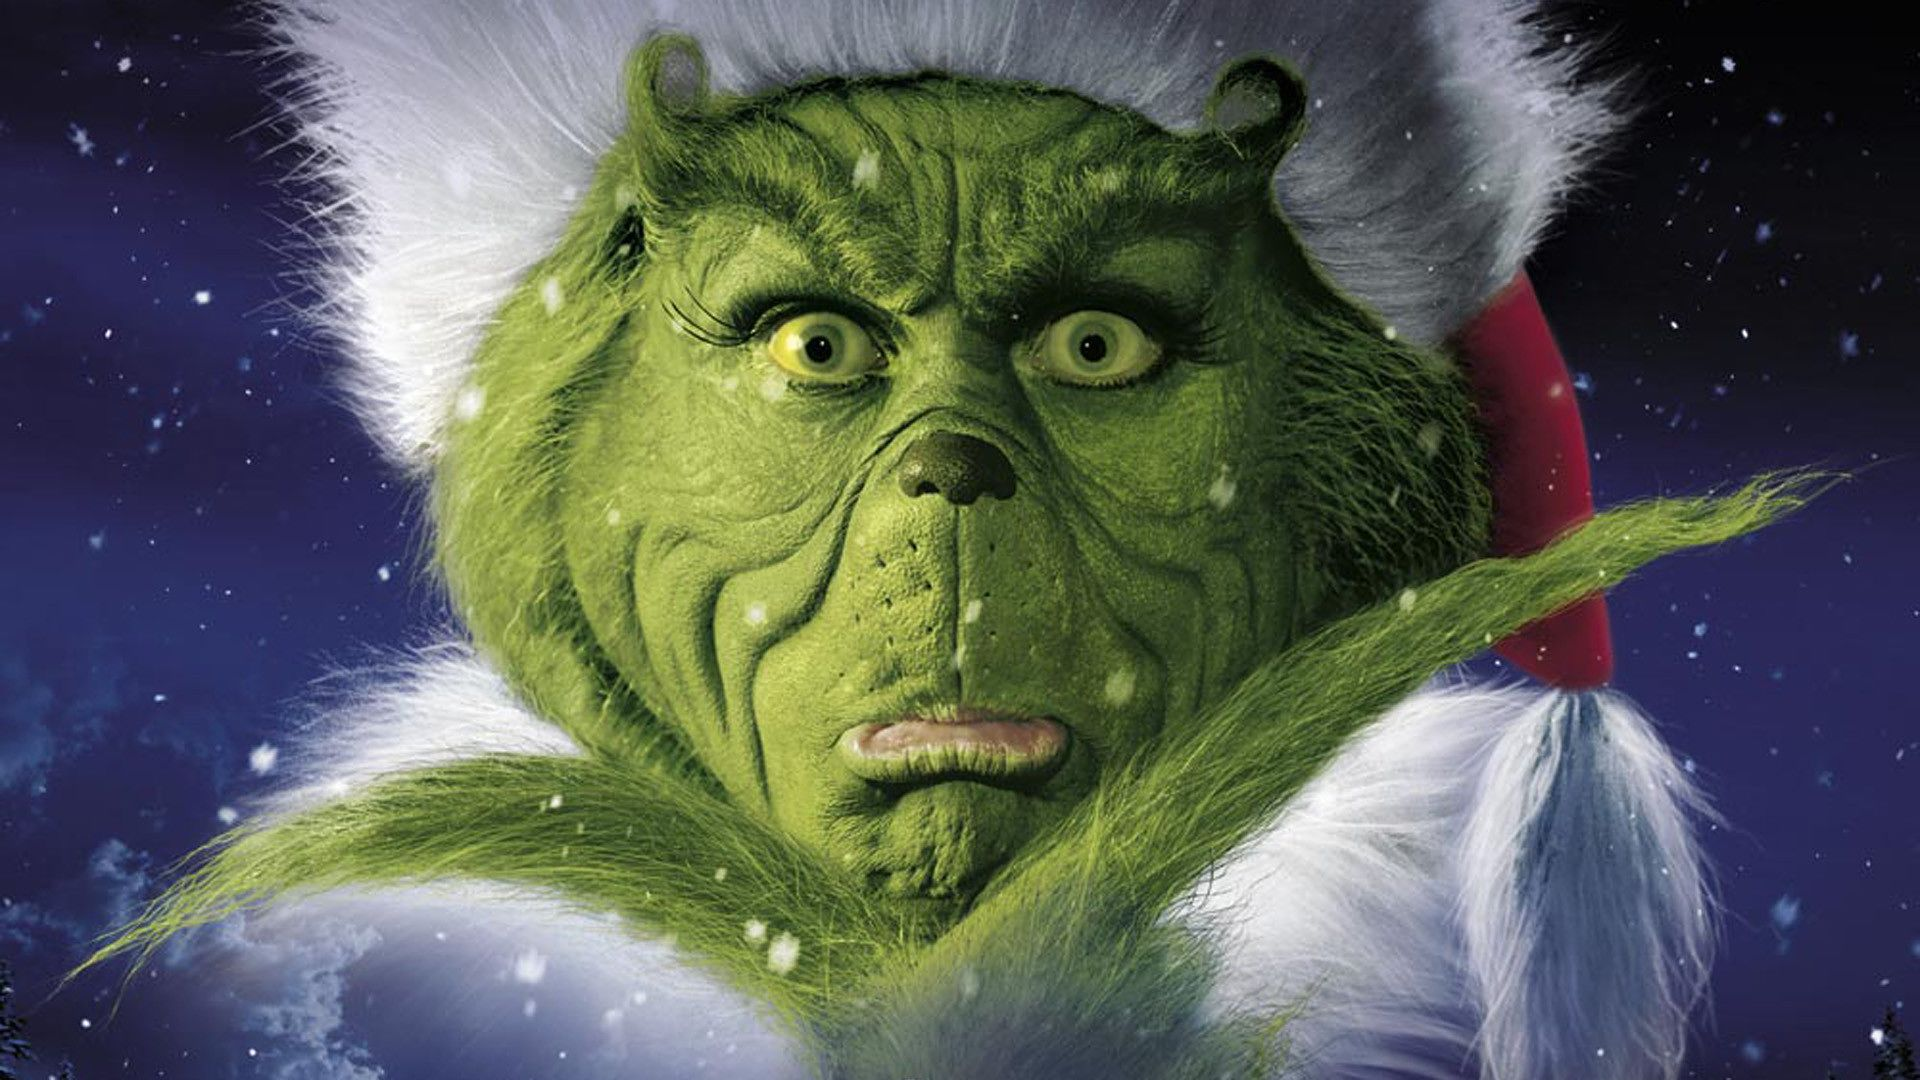 movie makeup the grinch